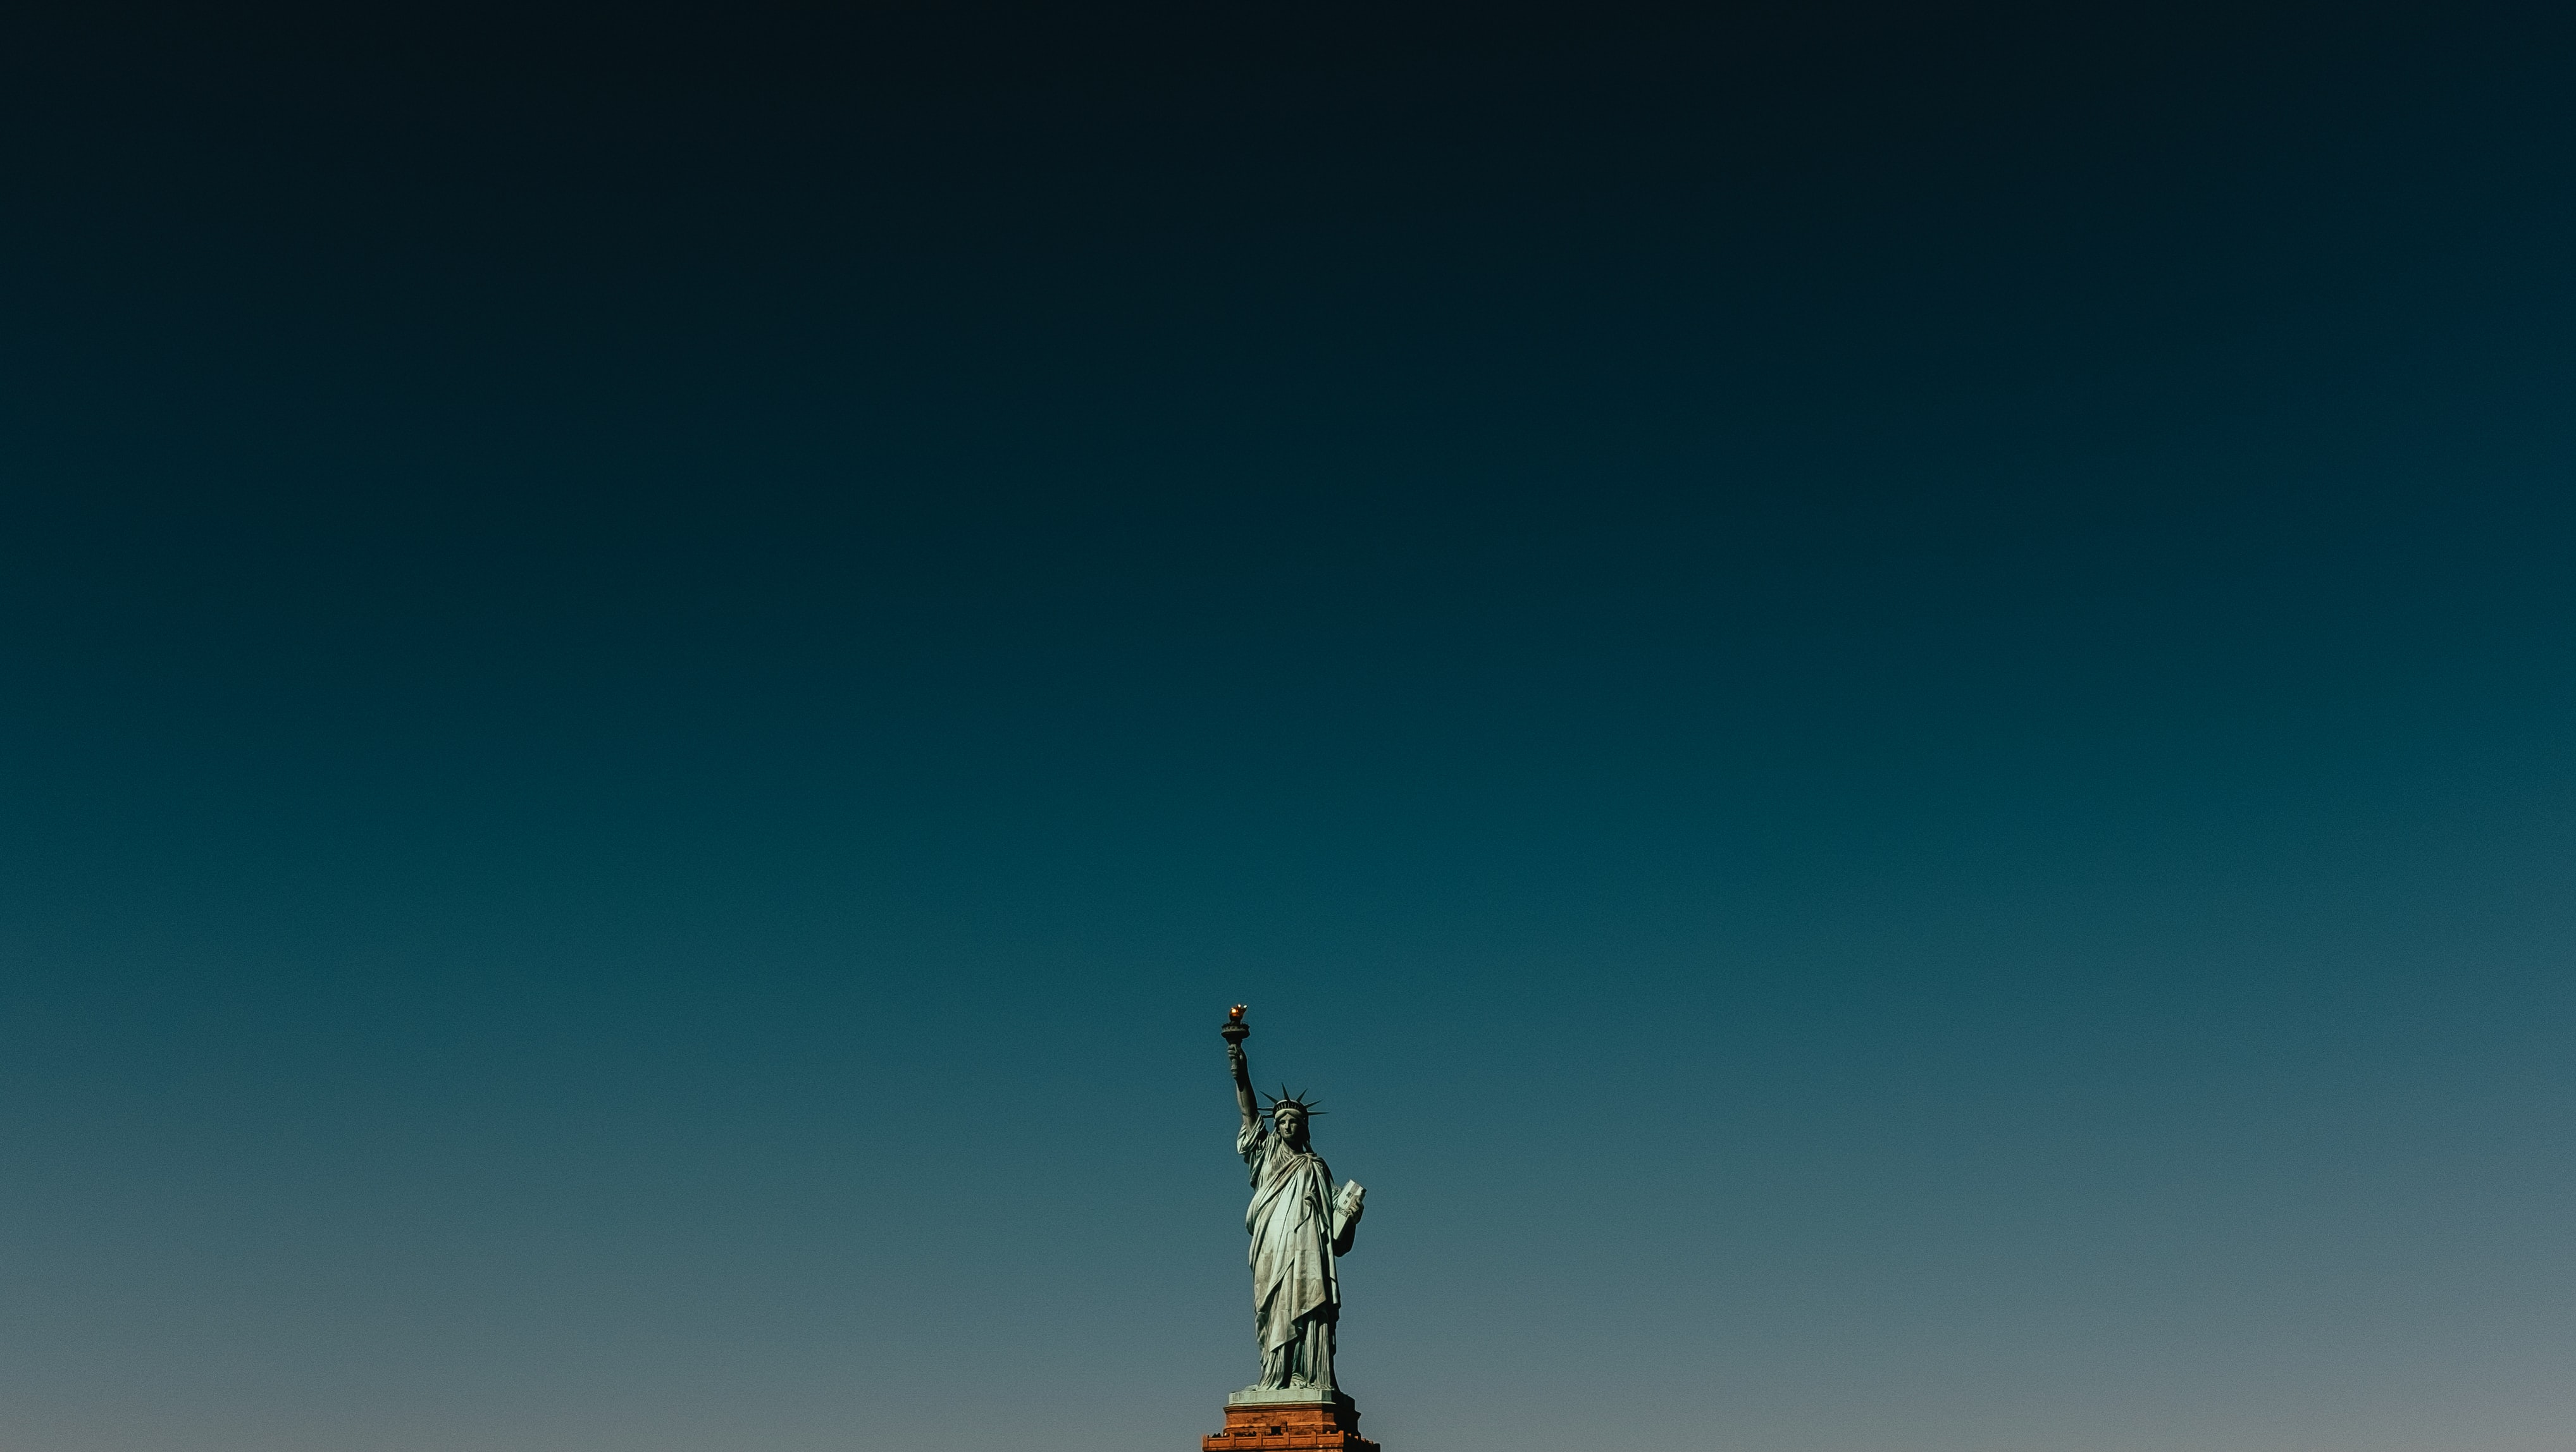 statue of liberty under clear sky